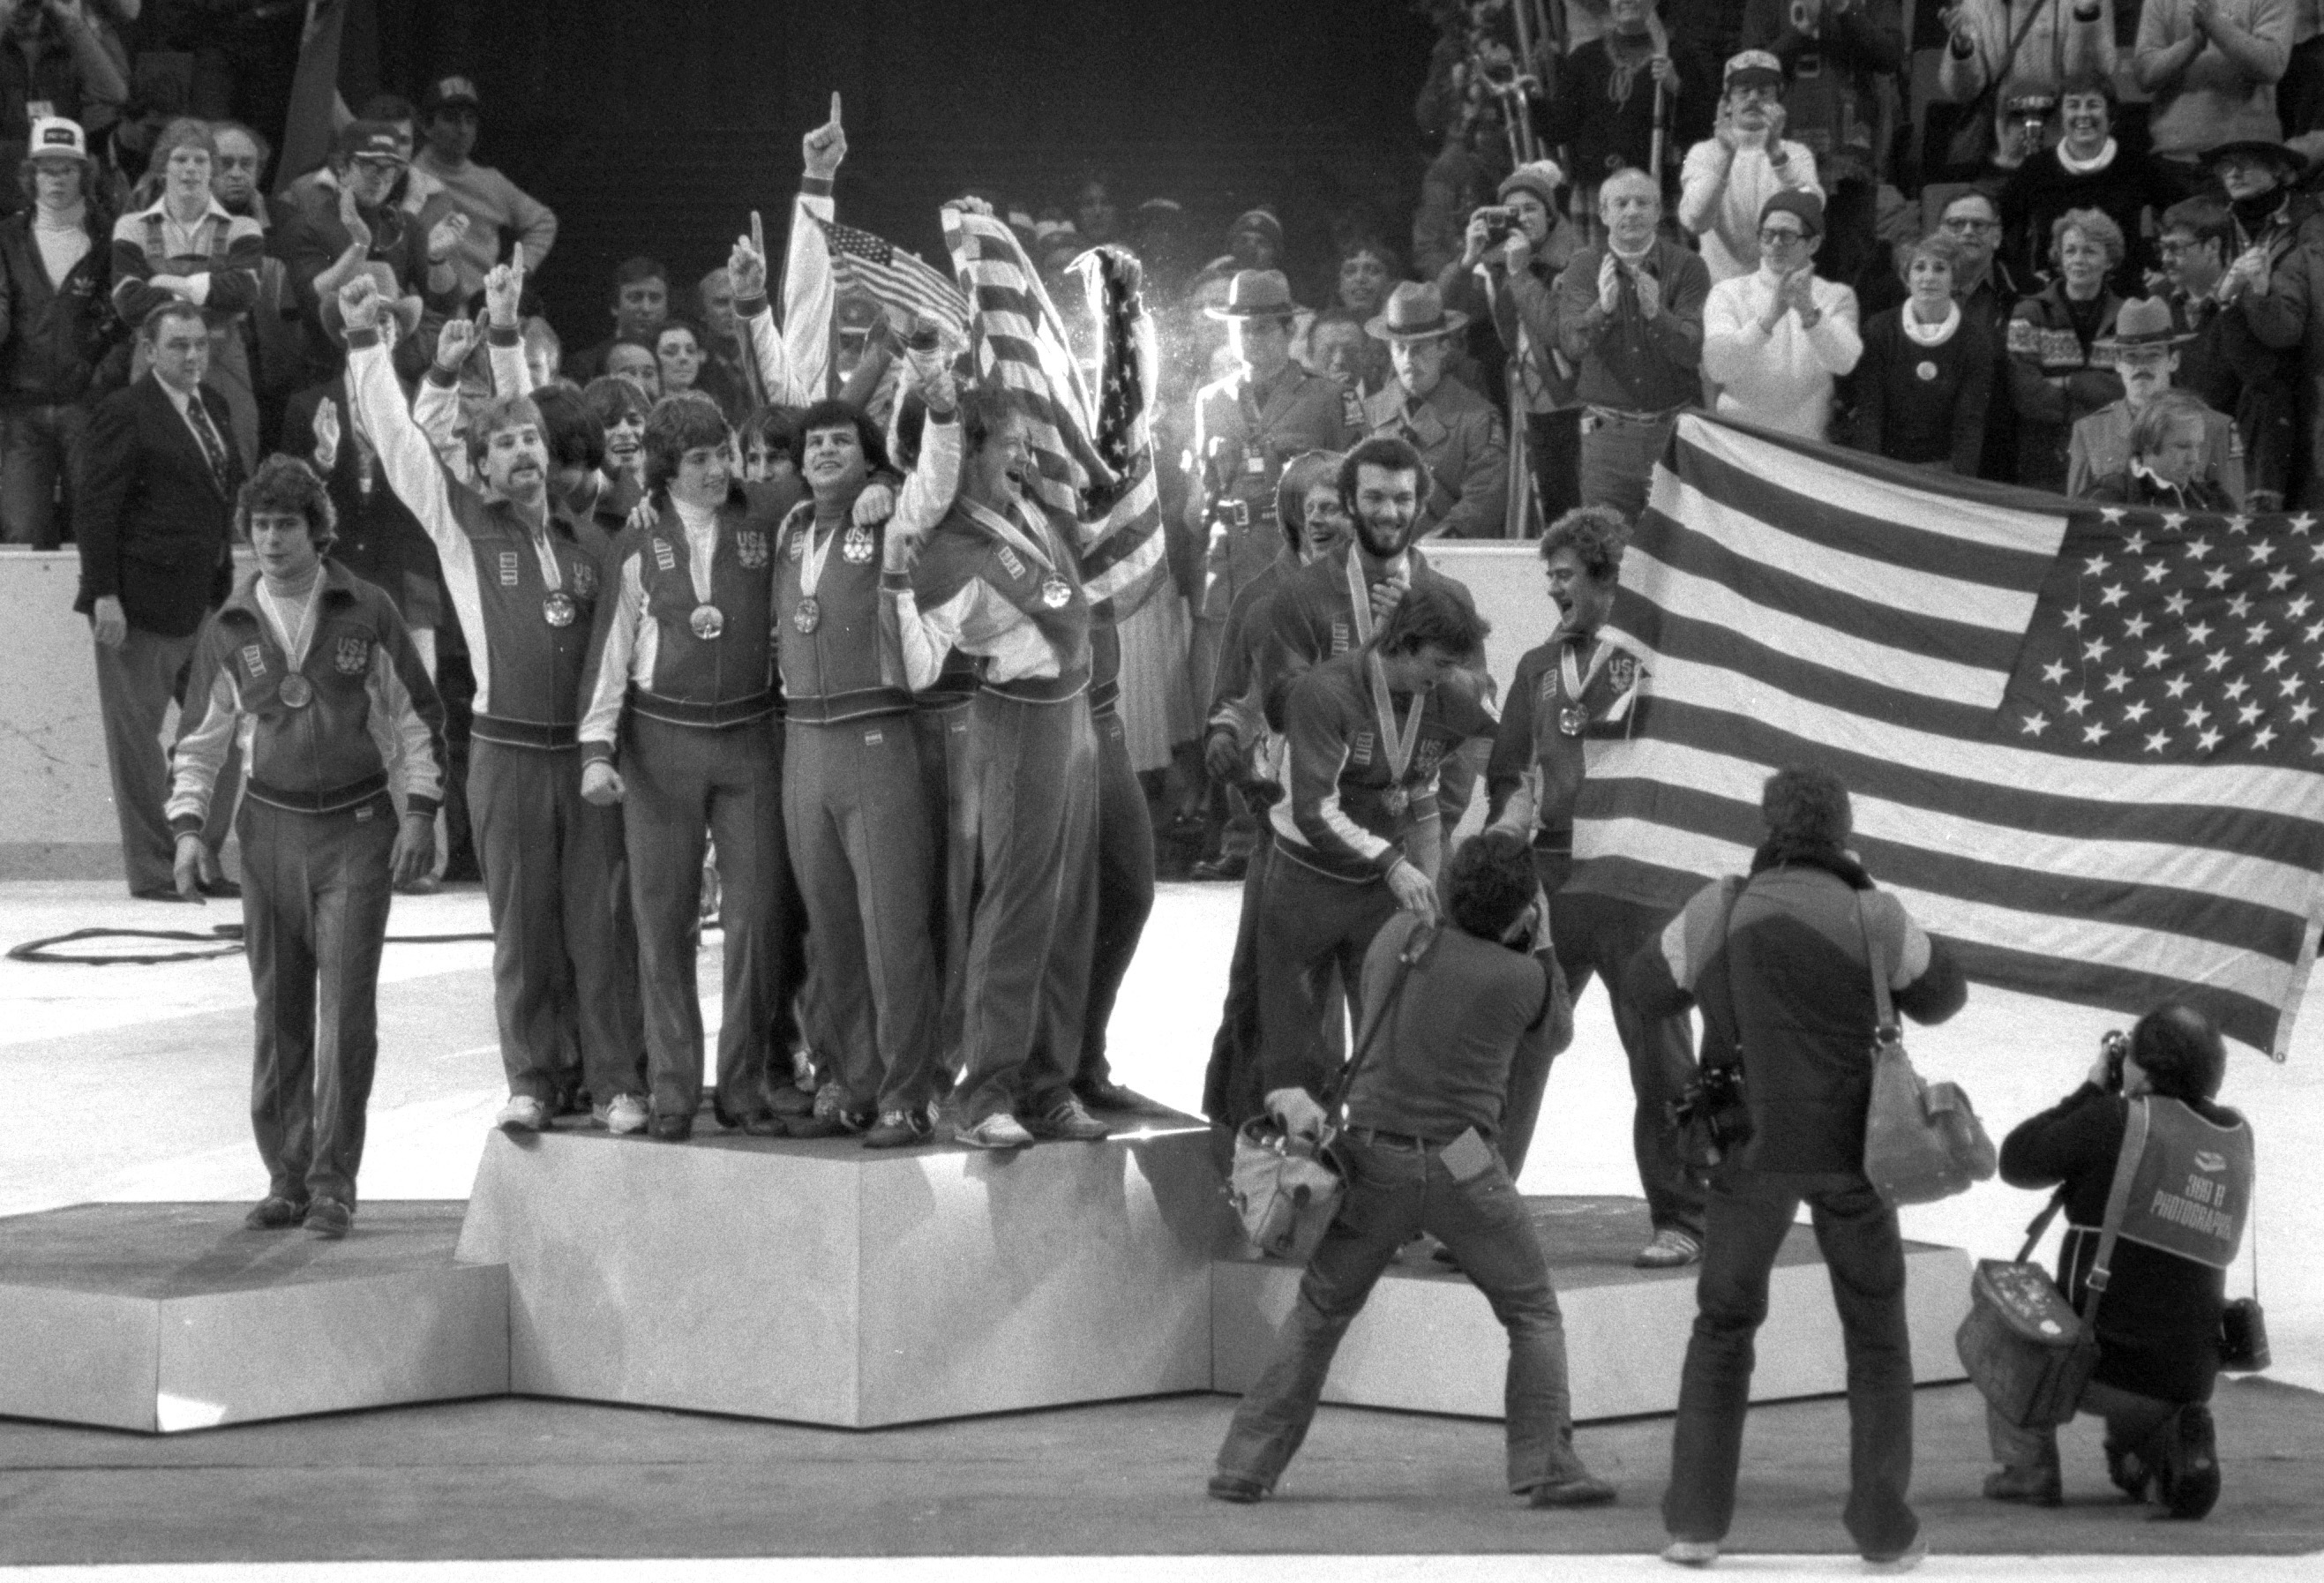 The United States Olympic Hockey Team atop the gold medal podium at the medals ceremony following their victory over Finland in Lake Placid, New York, on February 24, 1980.